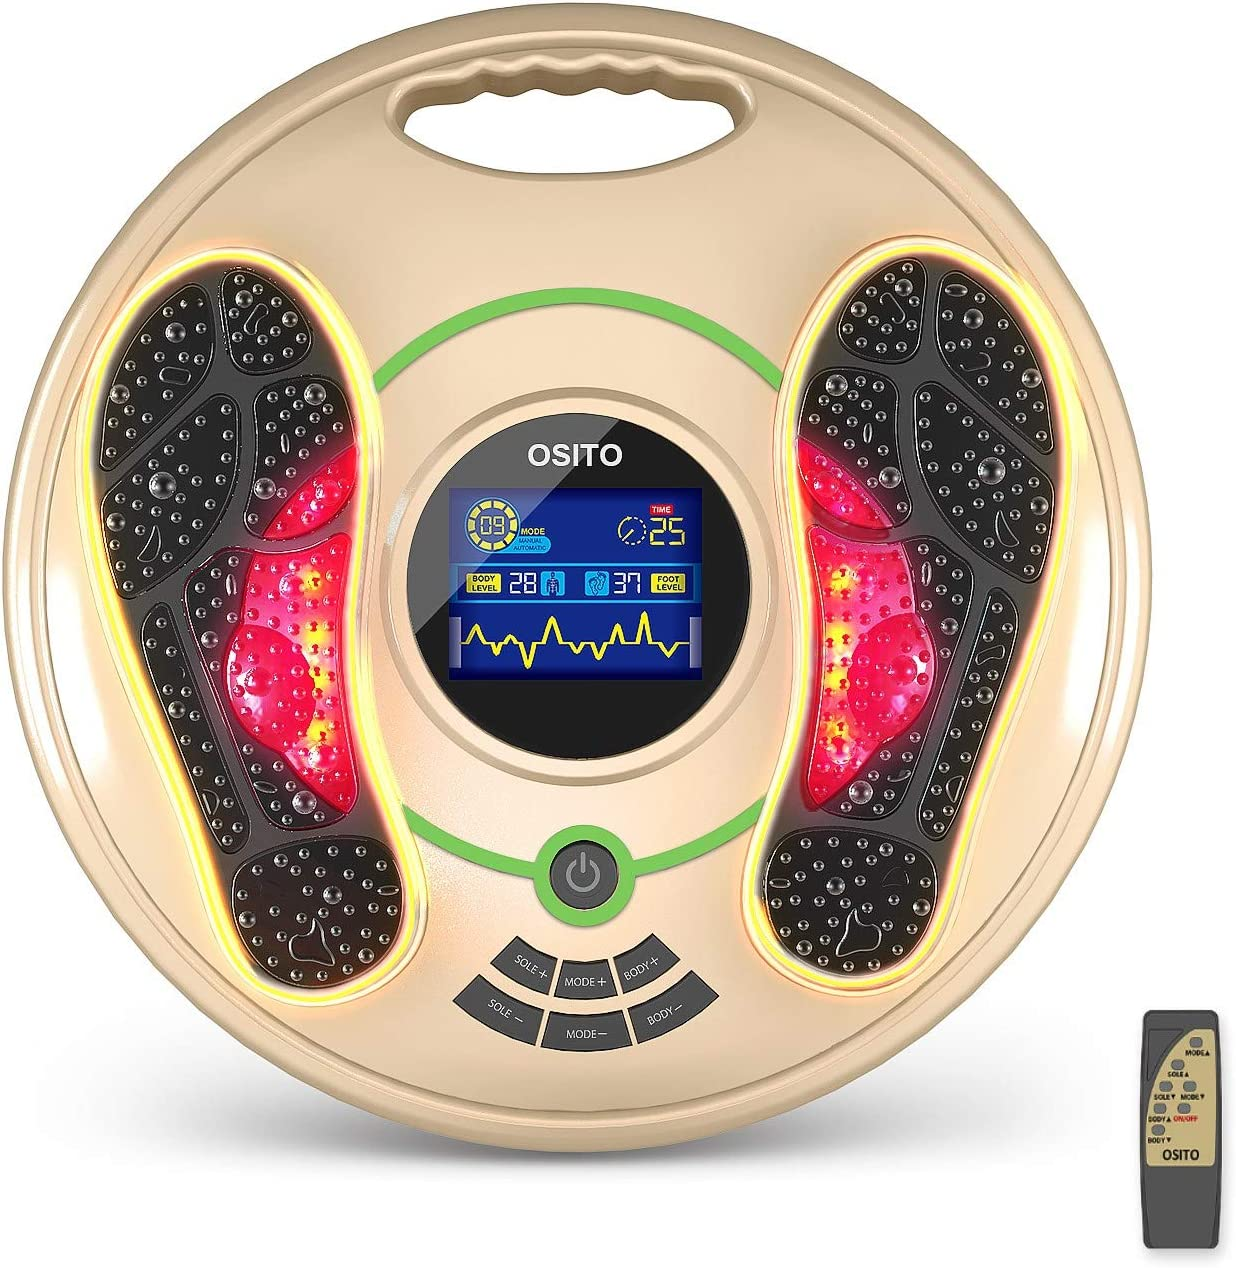 Foot Massager Machine - Electric Foot Circulation Devices (Foot Stimulator Devices) - Reduce Swelling Feet and Legs